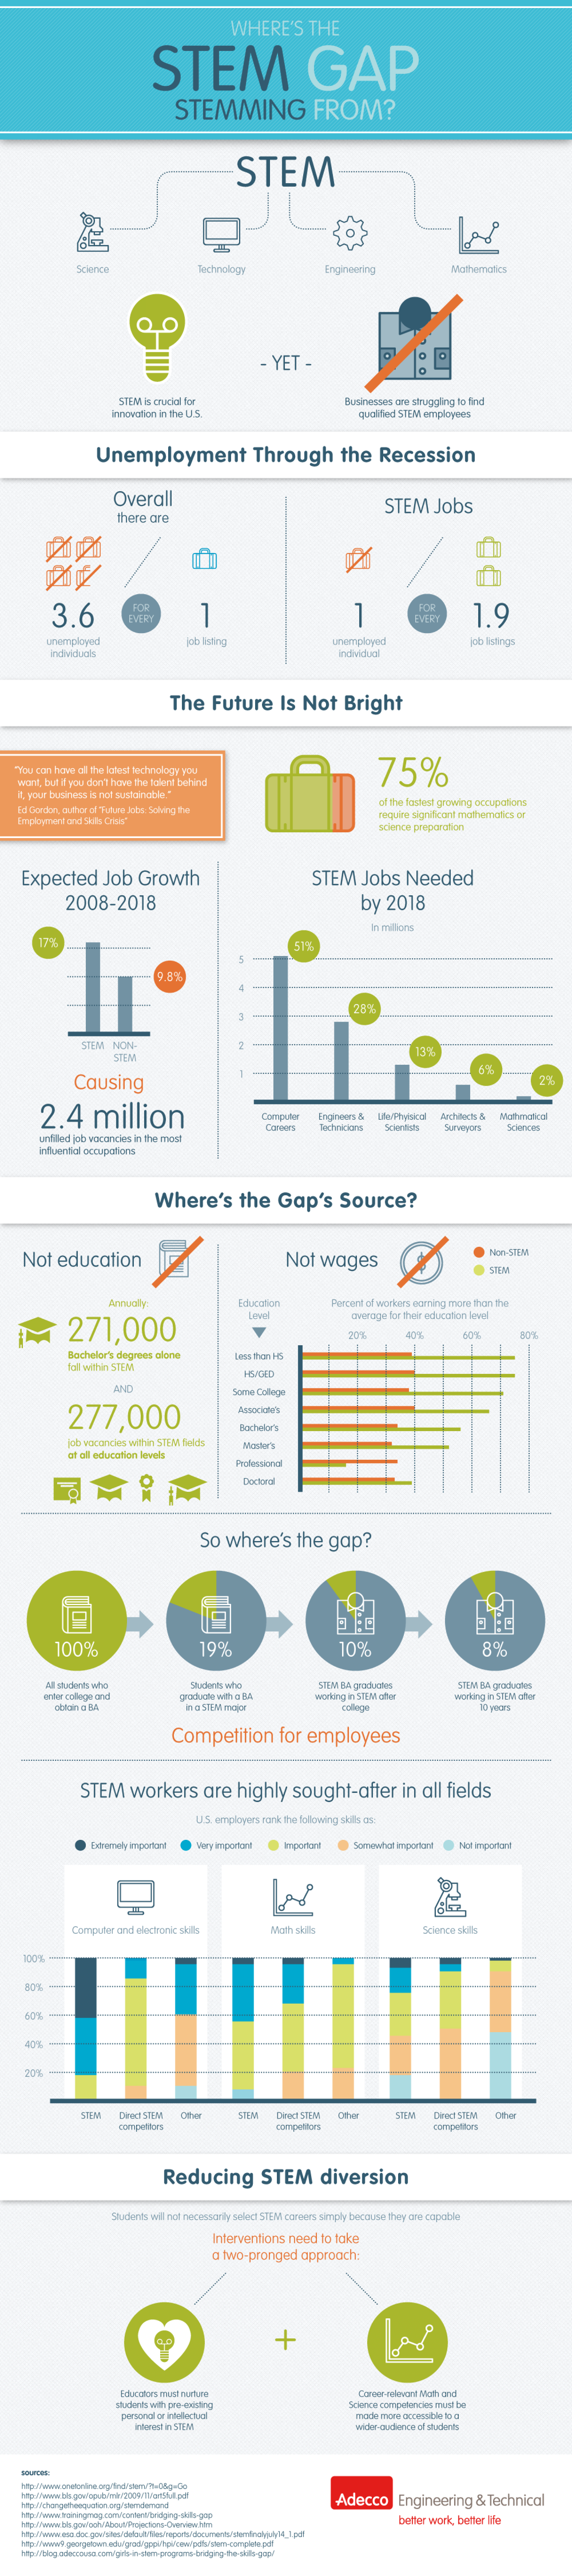 Where's the STEM Gap Stemming From? Infographic